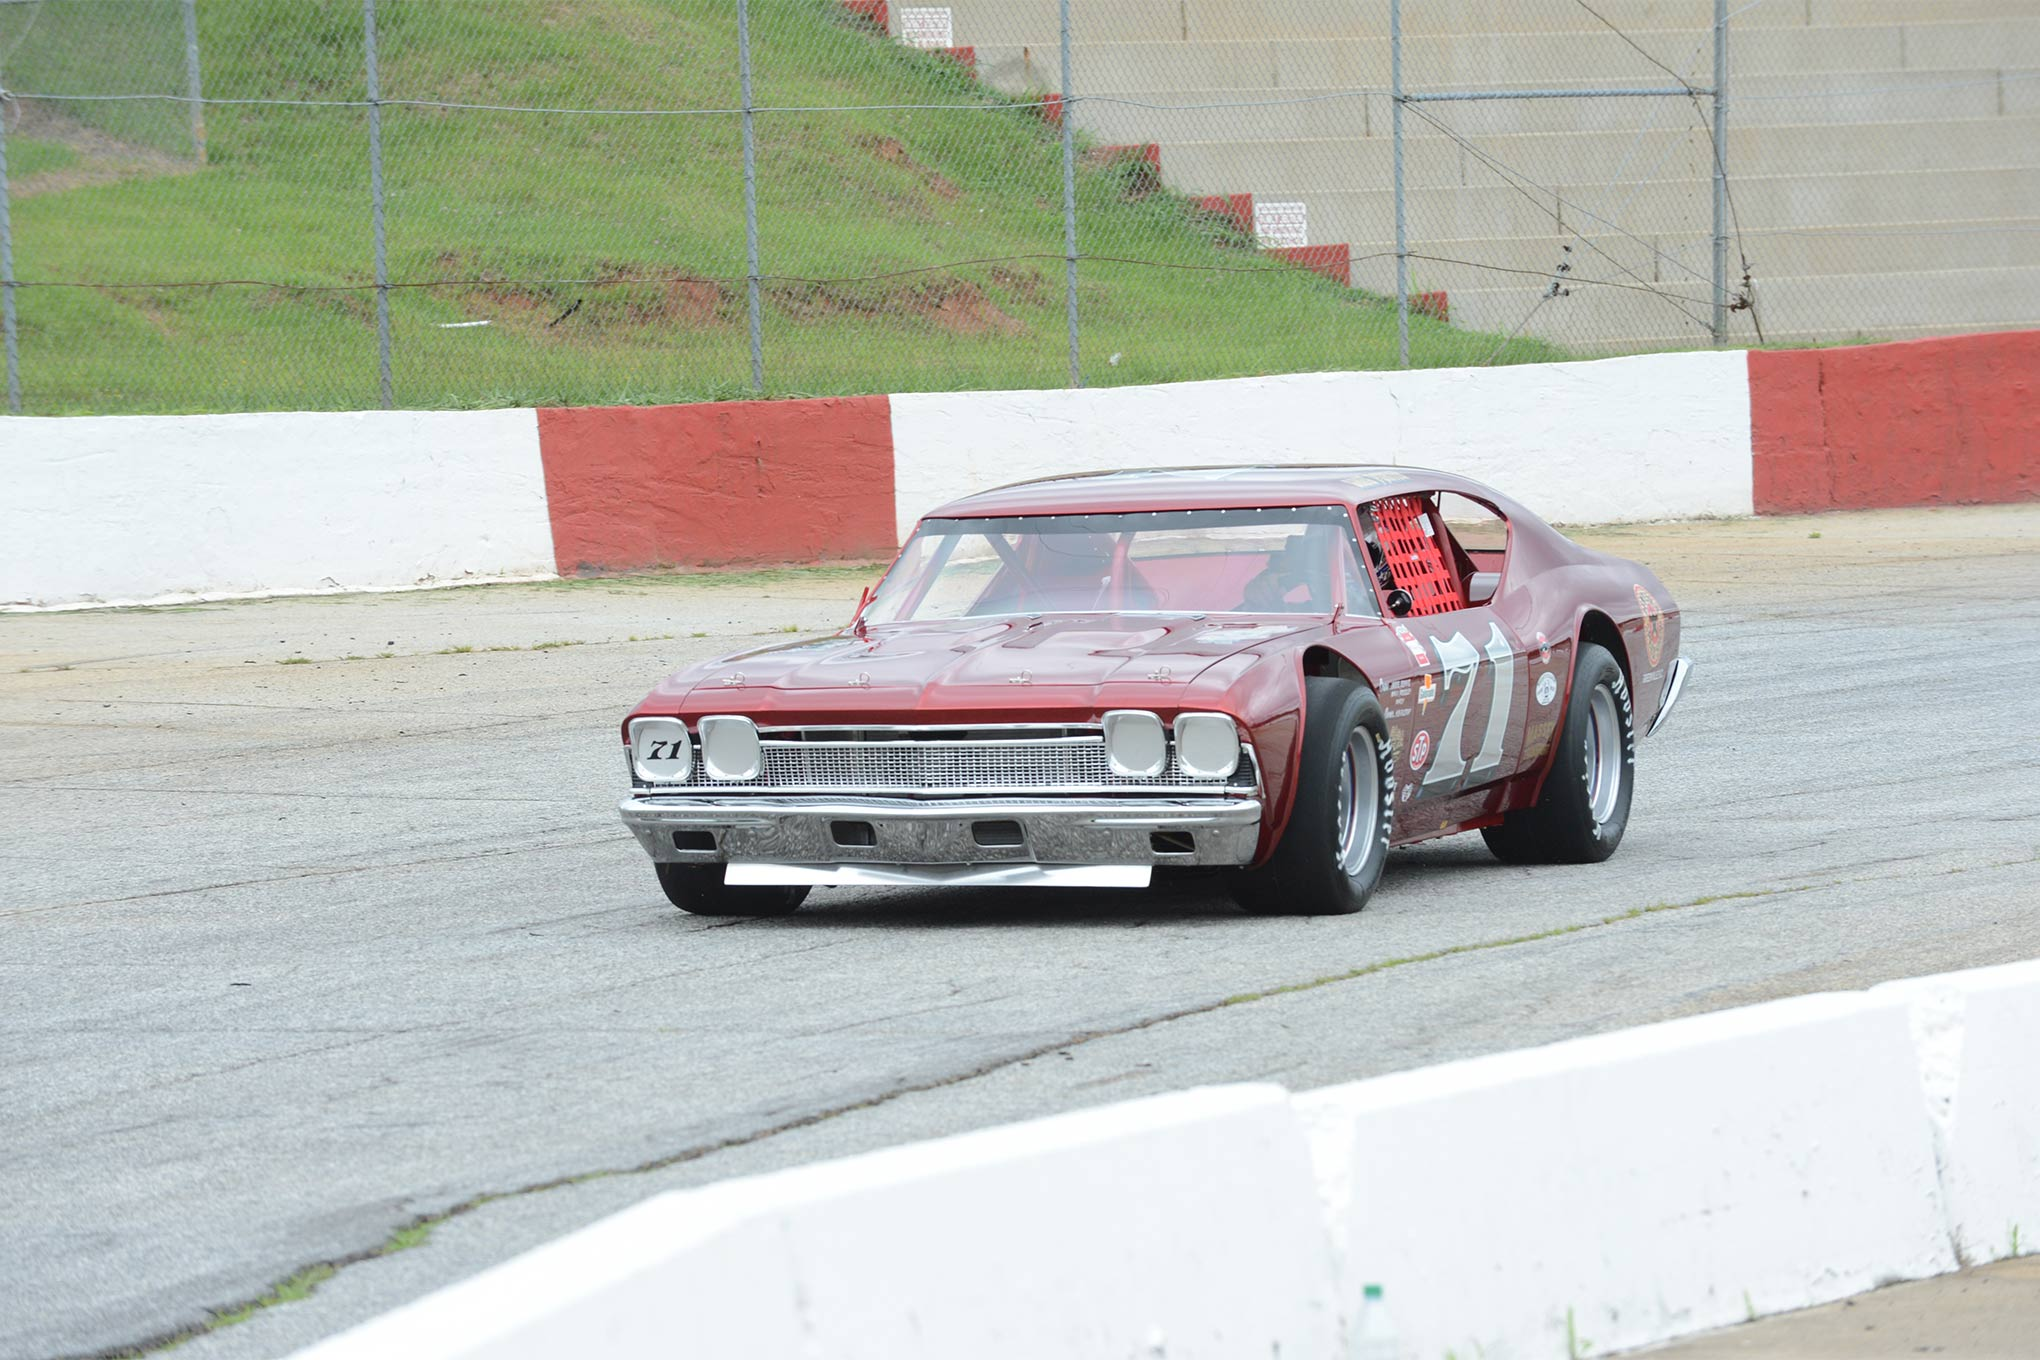 Porter put the '69 Chevelle back into action at Greenville-Pickens Speedway, a place where he picked up 32 career wins in the original Chevelle.